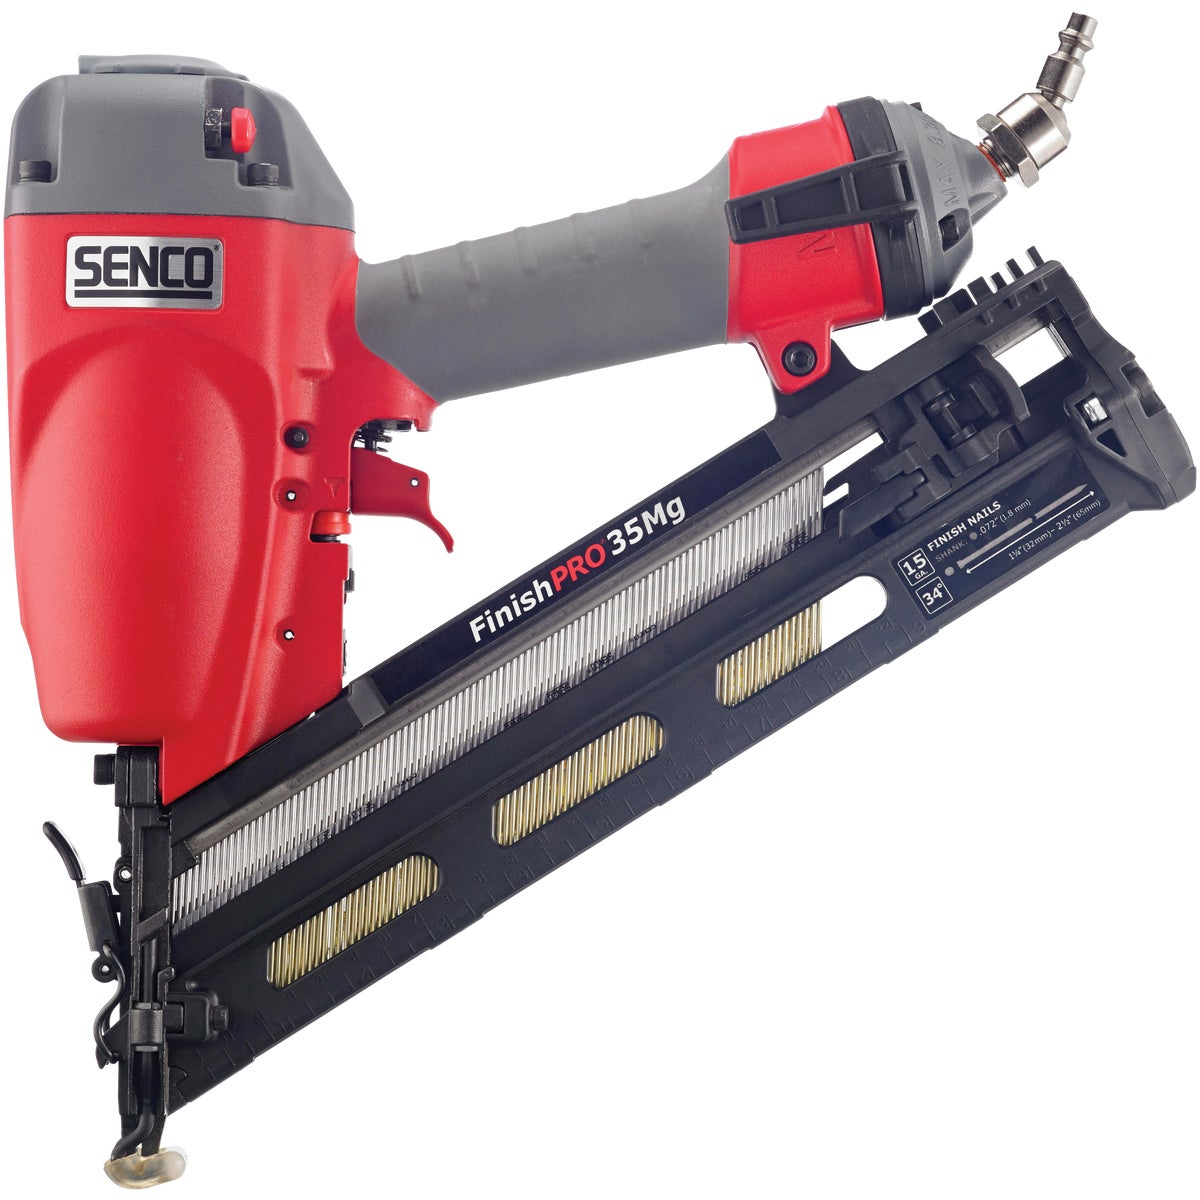 15GA ANGLD FINISH NAILER